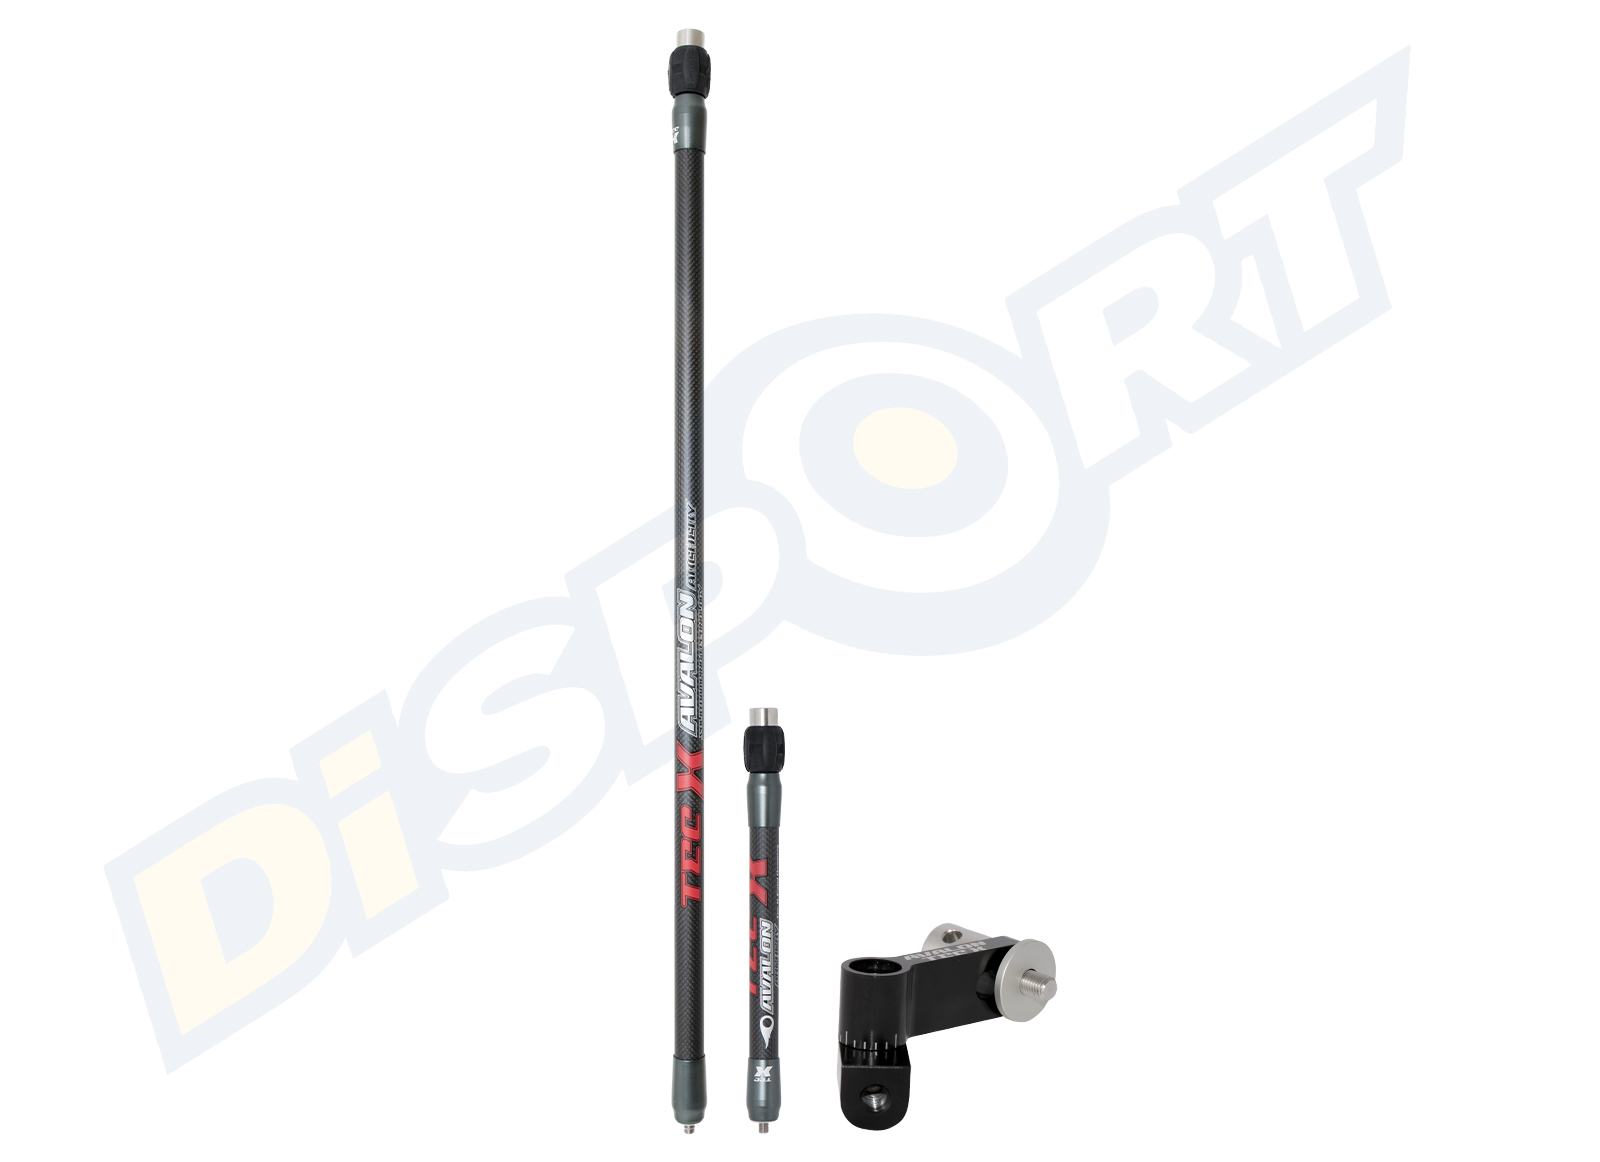 AVALON KIT STABILIZZAZIONE COMPOUND COMPLETA TEC X CON FRONT SIDE BAR